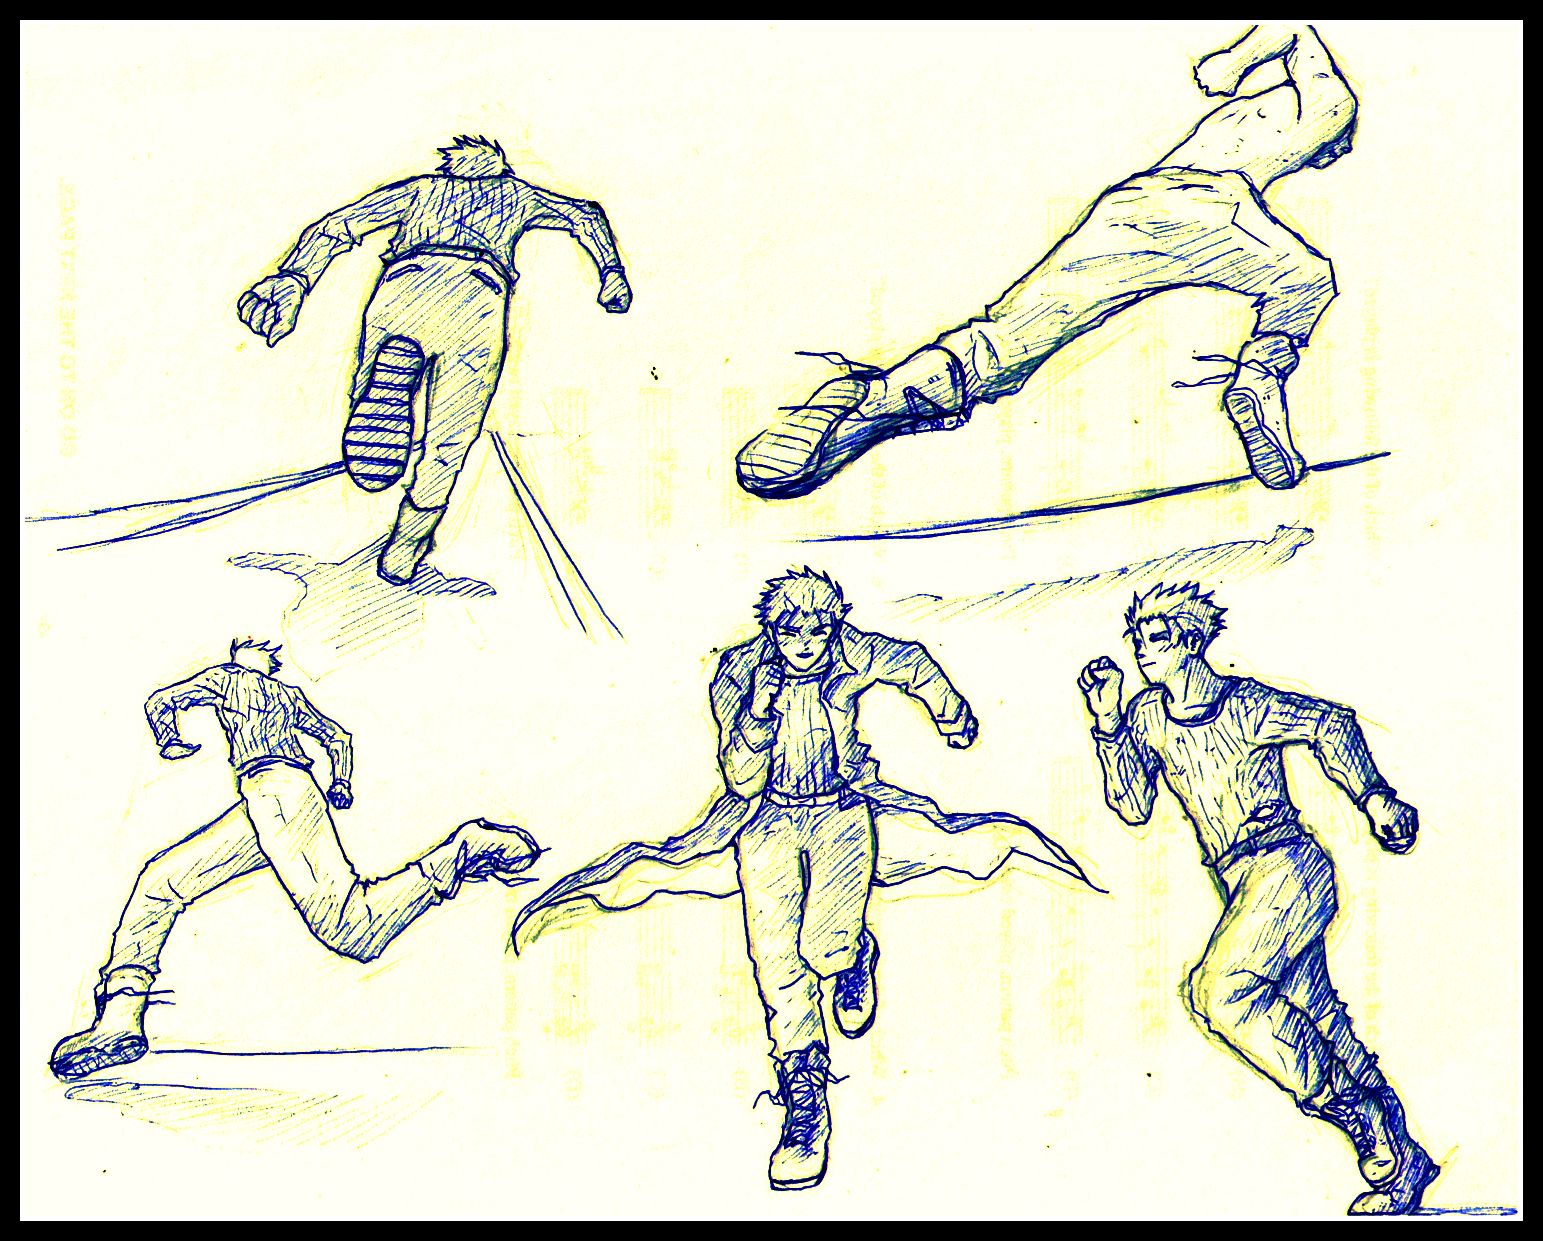 Dynamic Running Pose Reference For Artists And Sketching That I Made A Few Years Ago Running Pose Anime Poses Reference Anime Poses